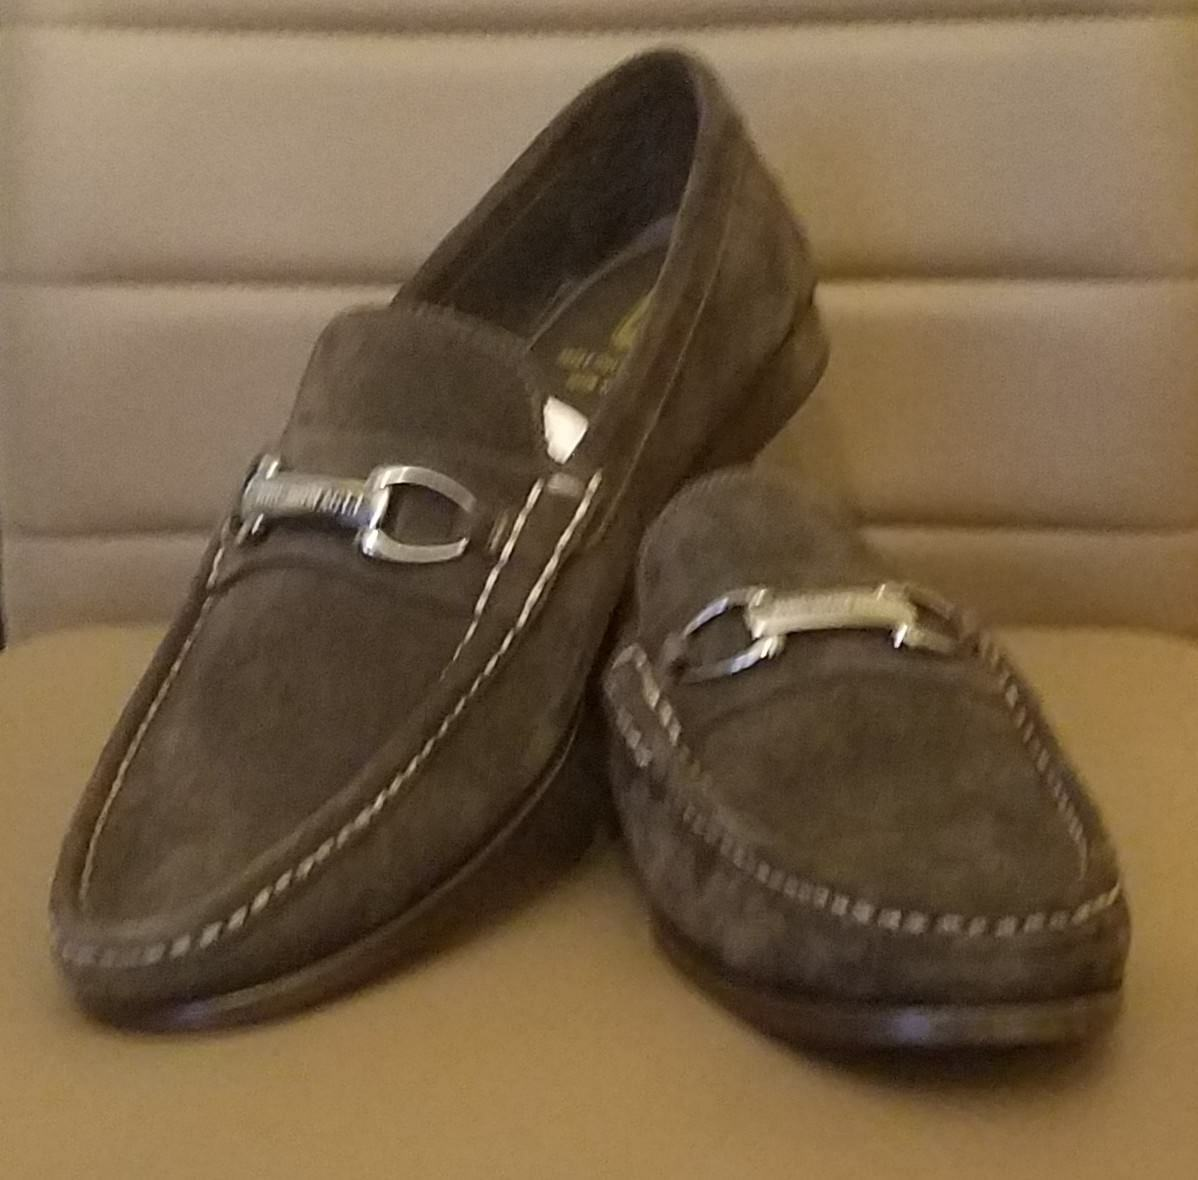 BRUNO MAGLI SHOES DARK BROWN SUEDE TOWNSEND MEN LOAFERS  9.5 NEW